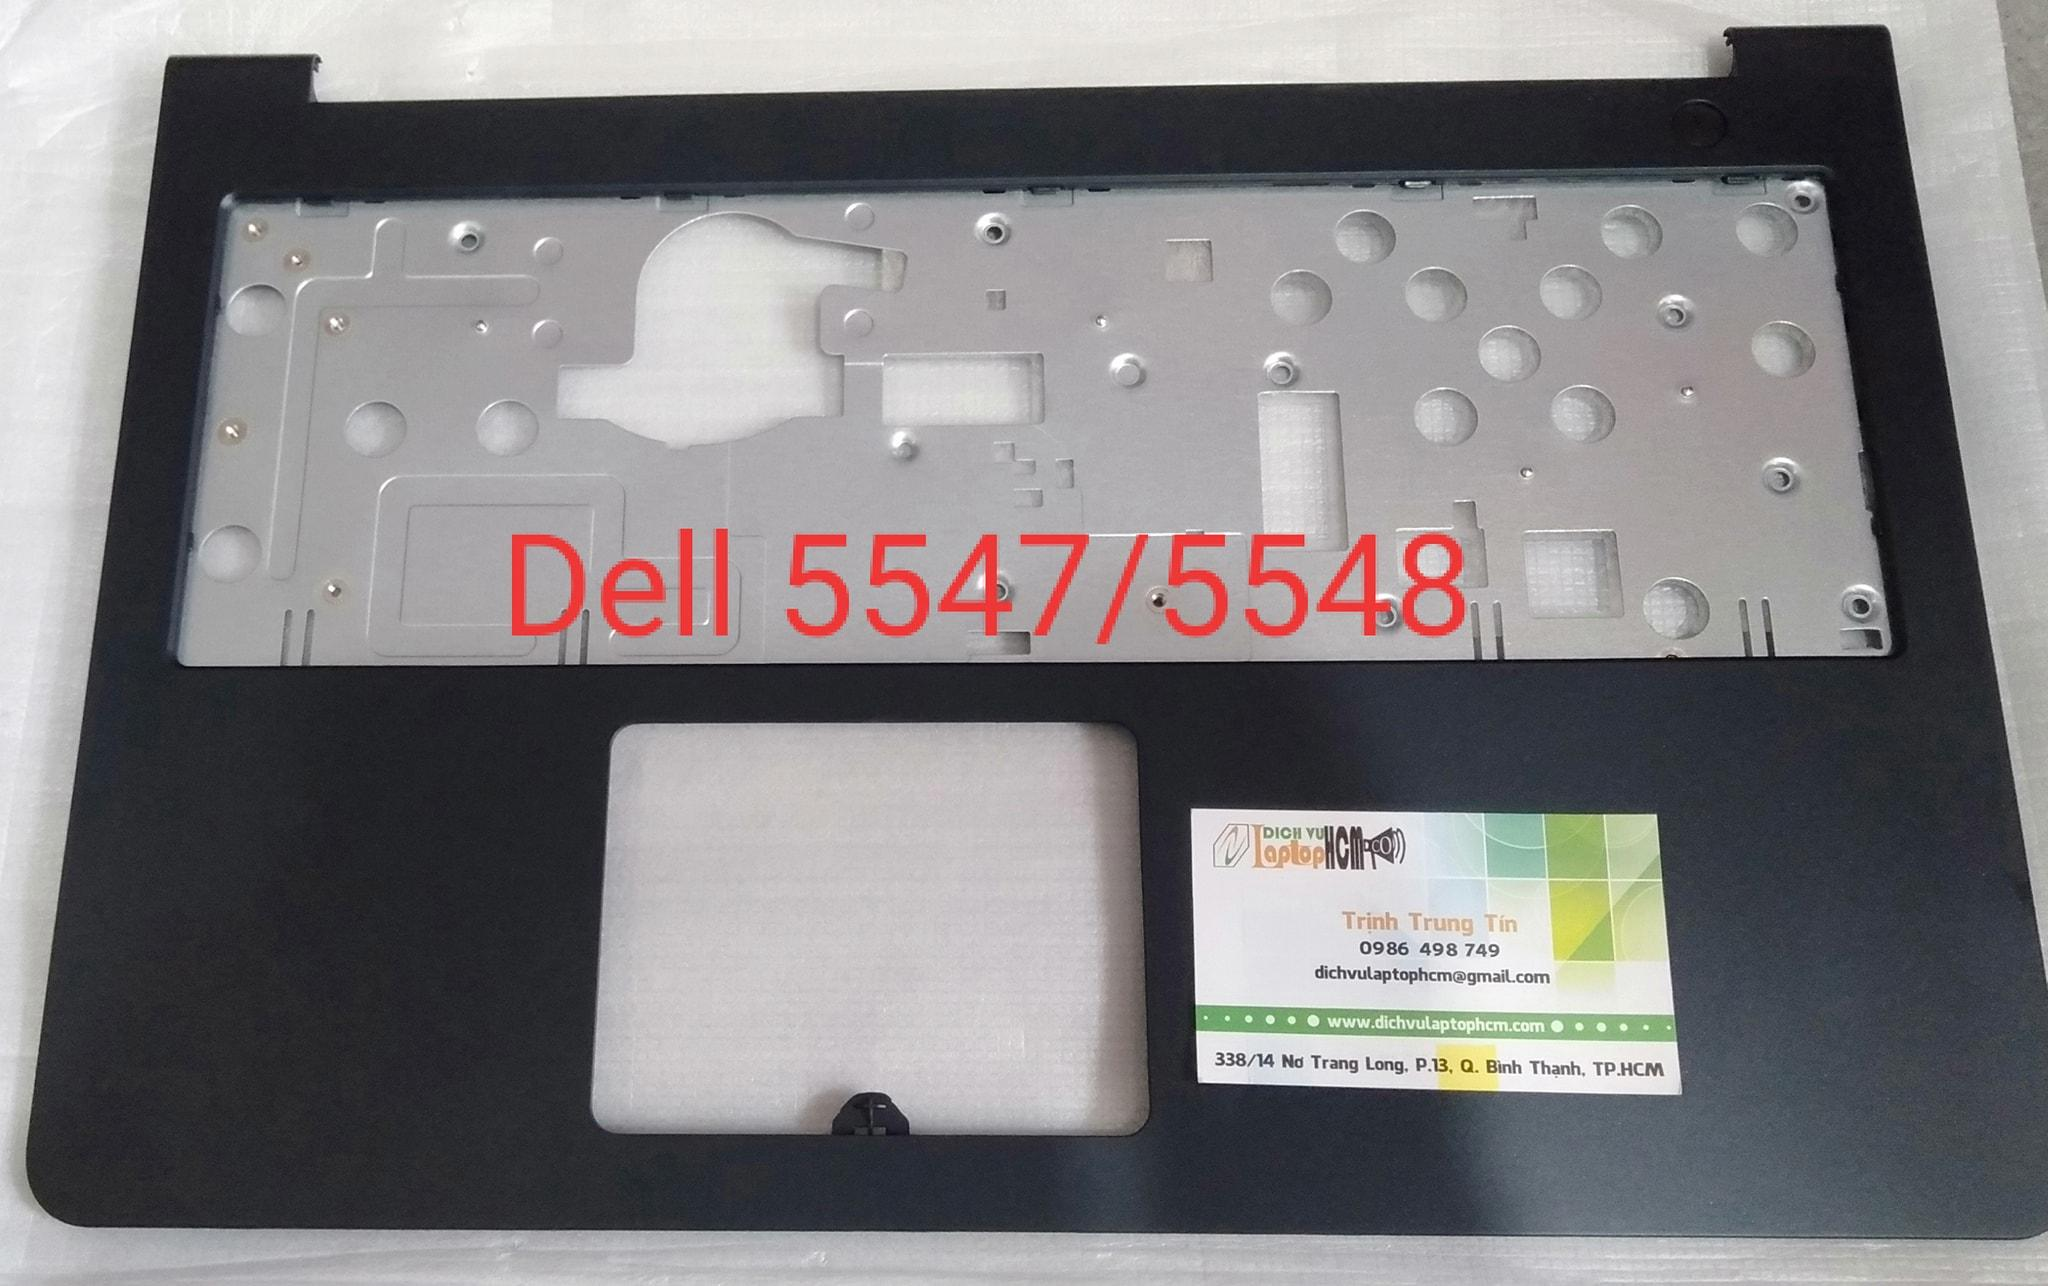 vo-laptop-dell-inspiron-15-5547-5548-Mat-Ban-Phim-C